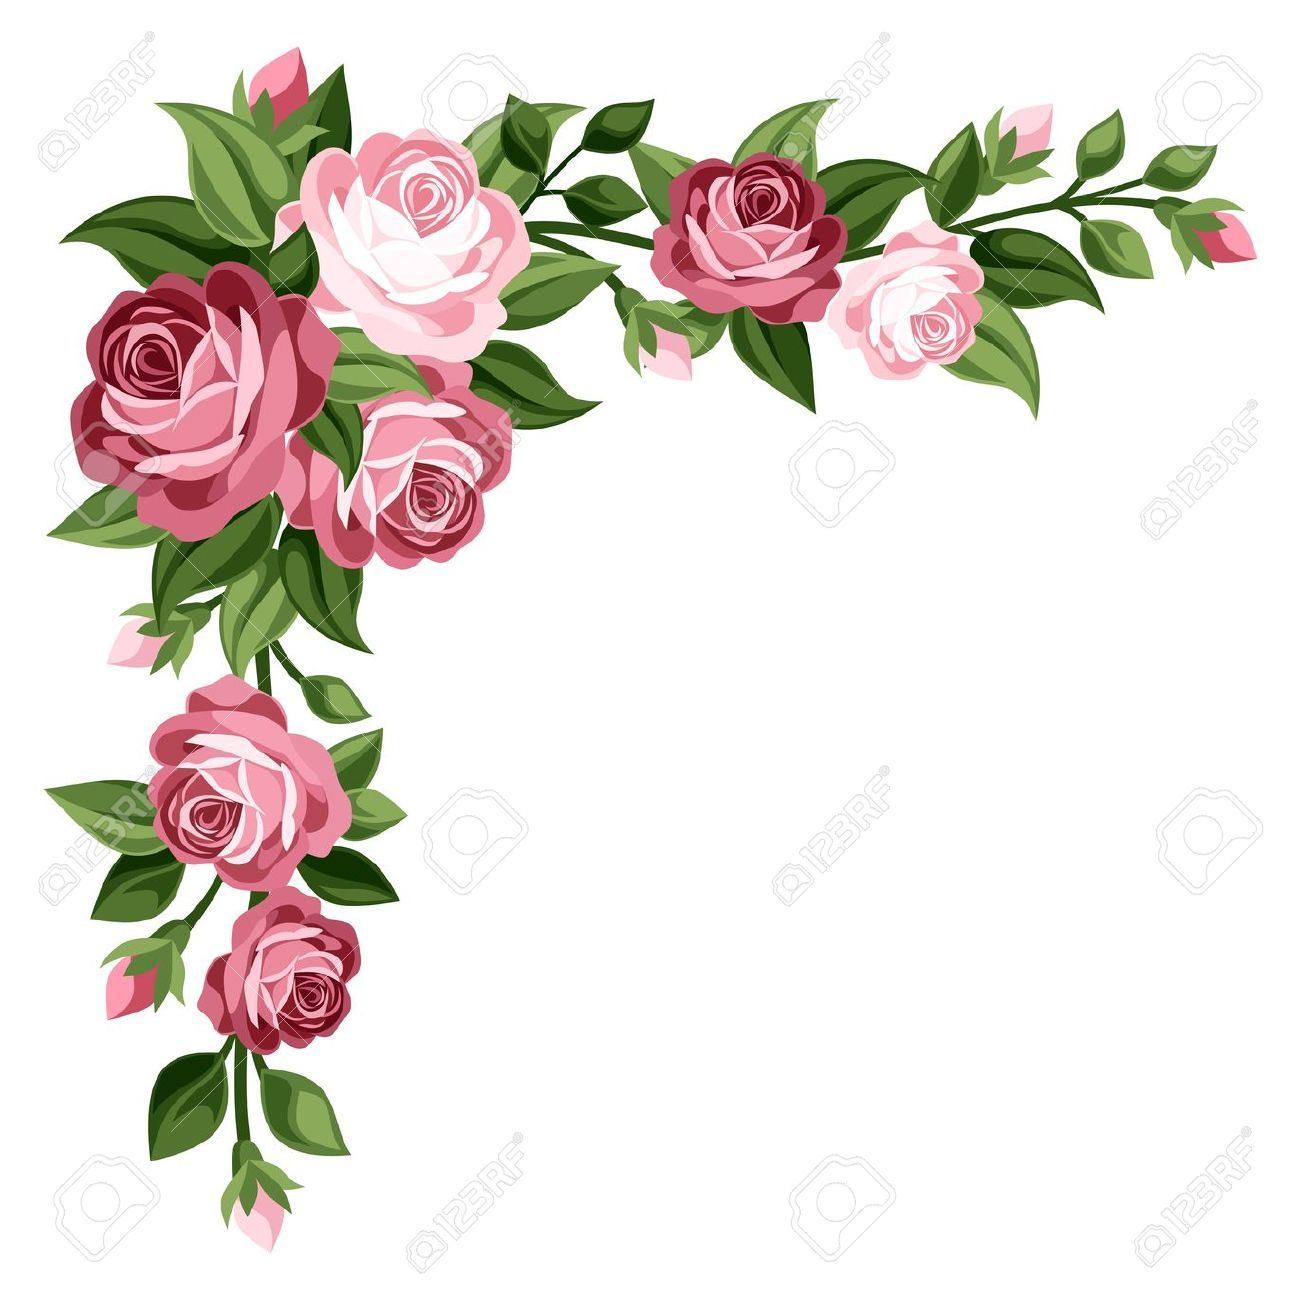 rose flower border clipart tags pinterest rose flower and flowers rh pinterest com clip art flower borders clip art flower borders for funeral programs